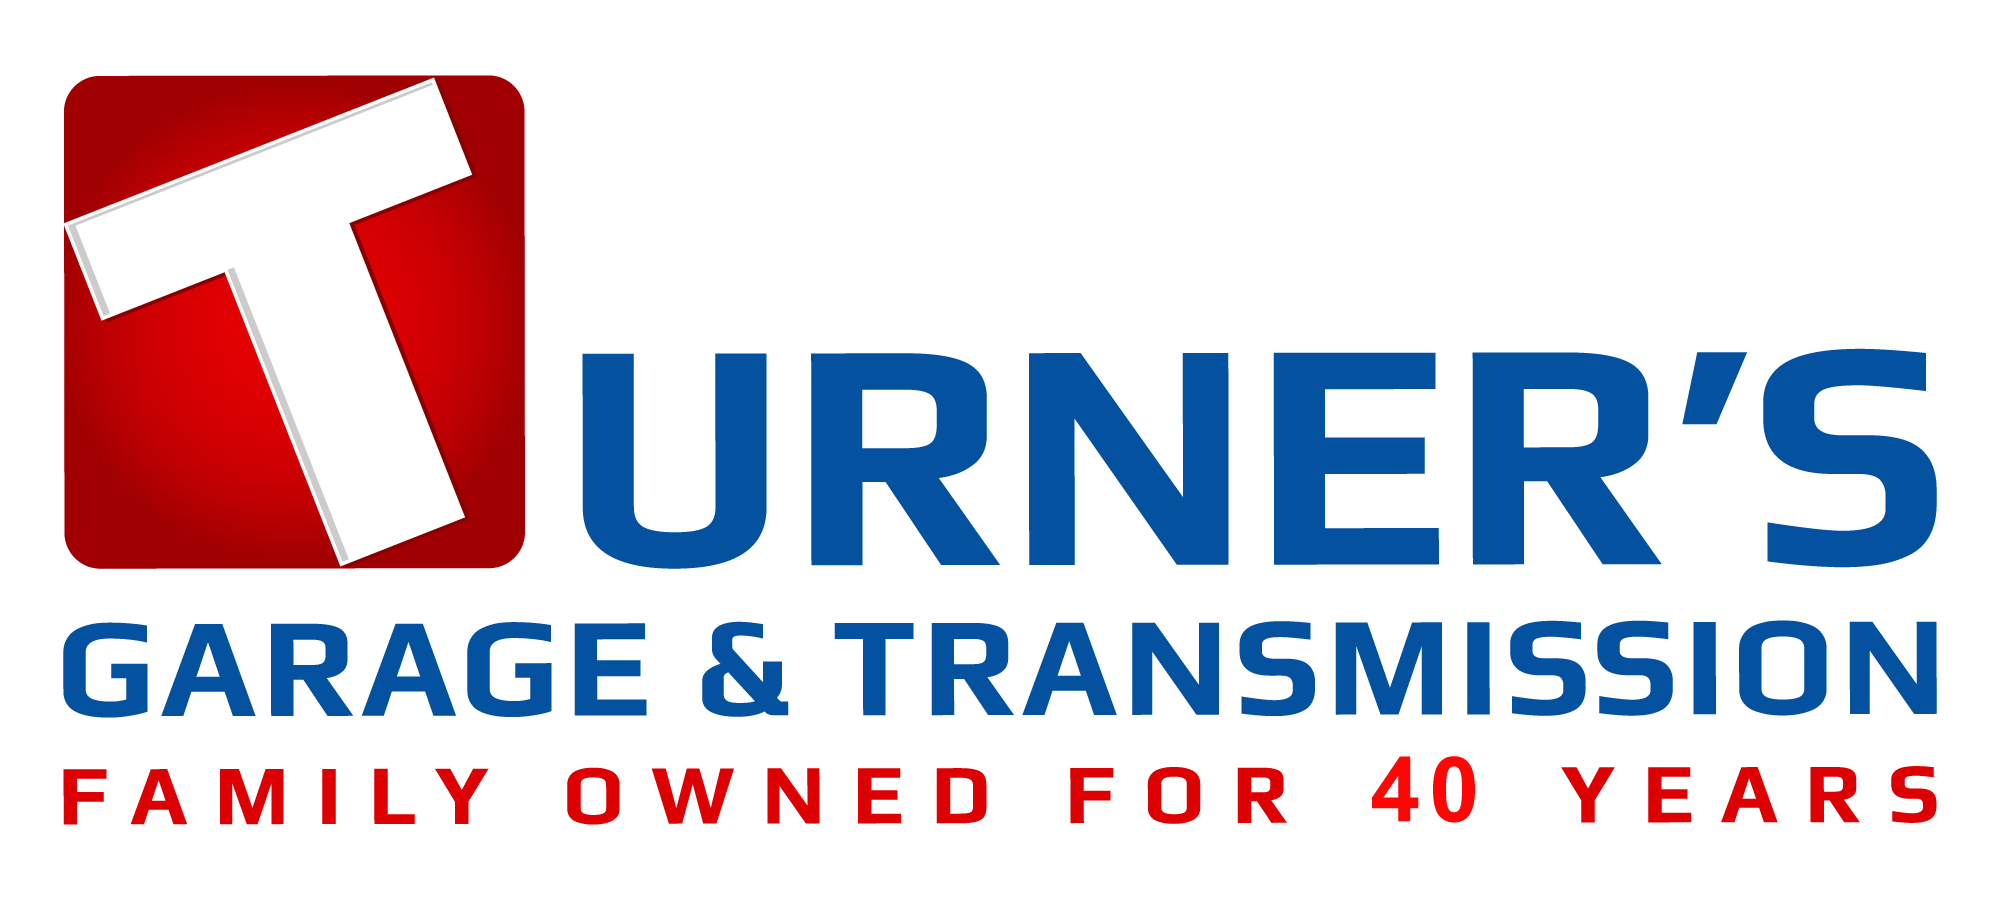 Turner's Garage & Transmission | Auto Repair & Service in Sumter, SC